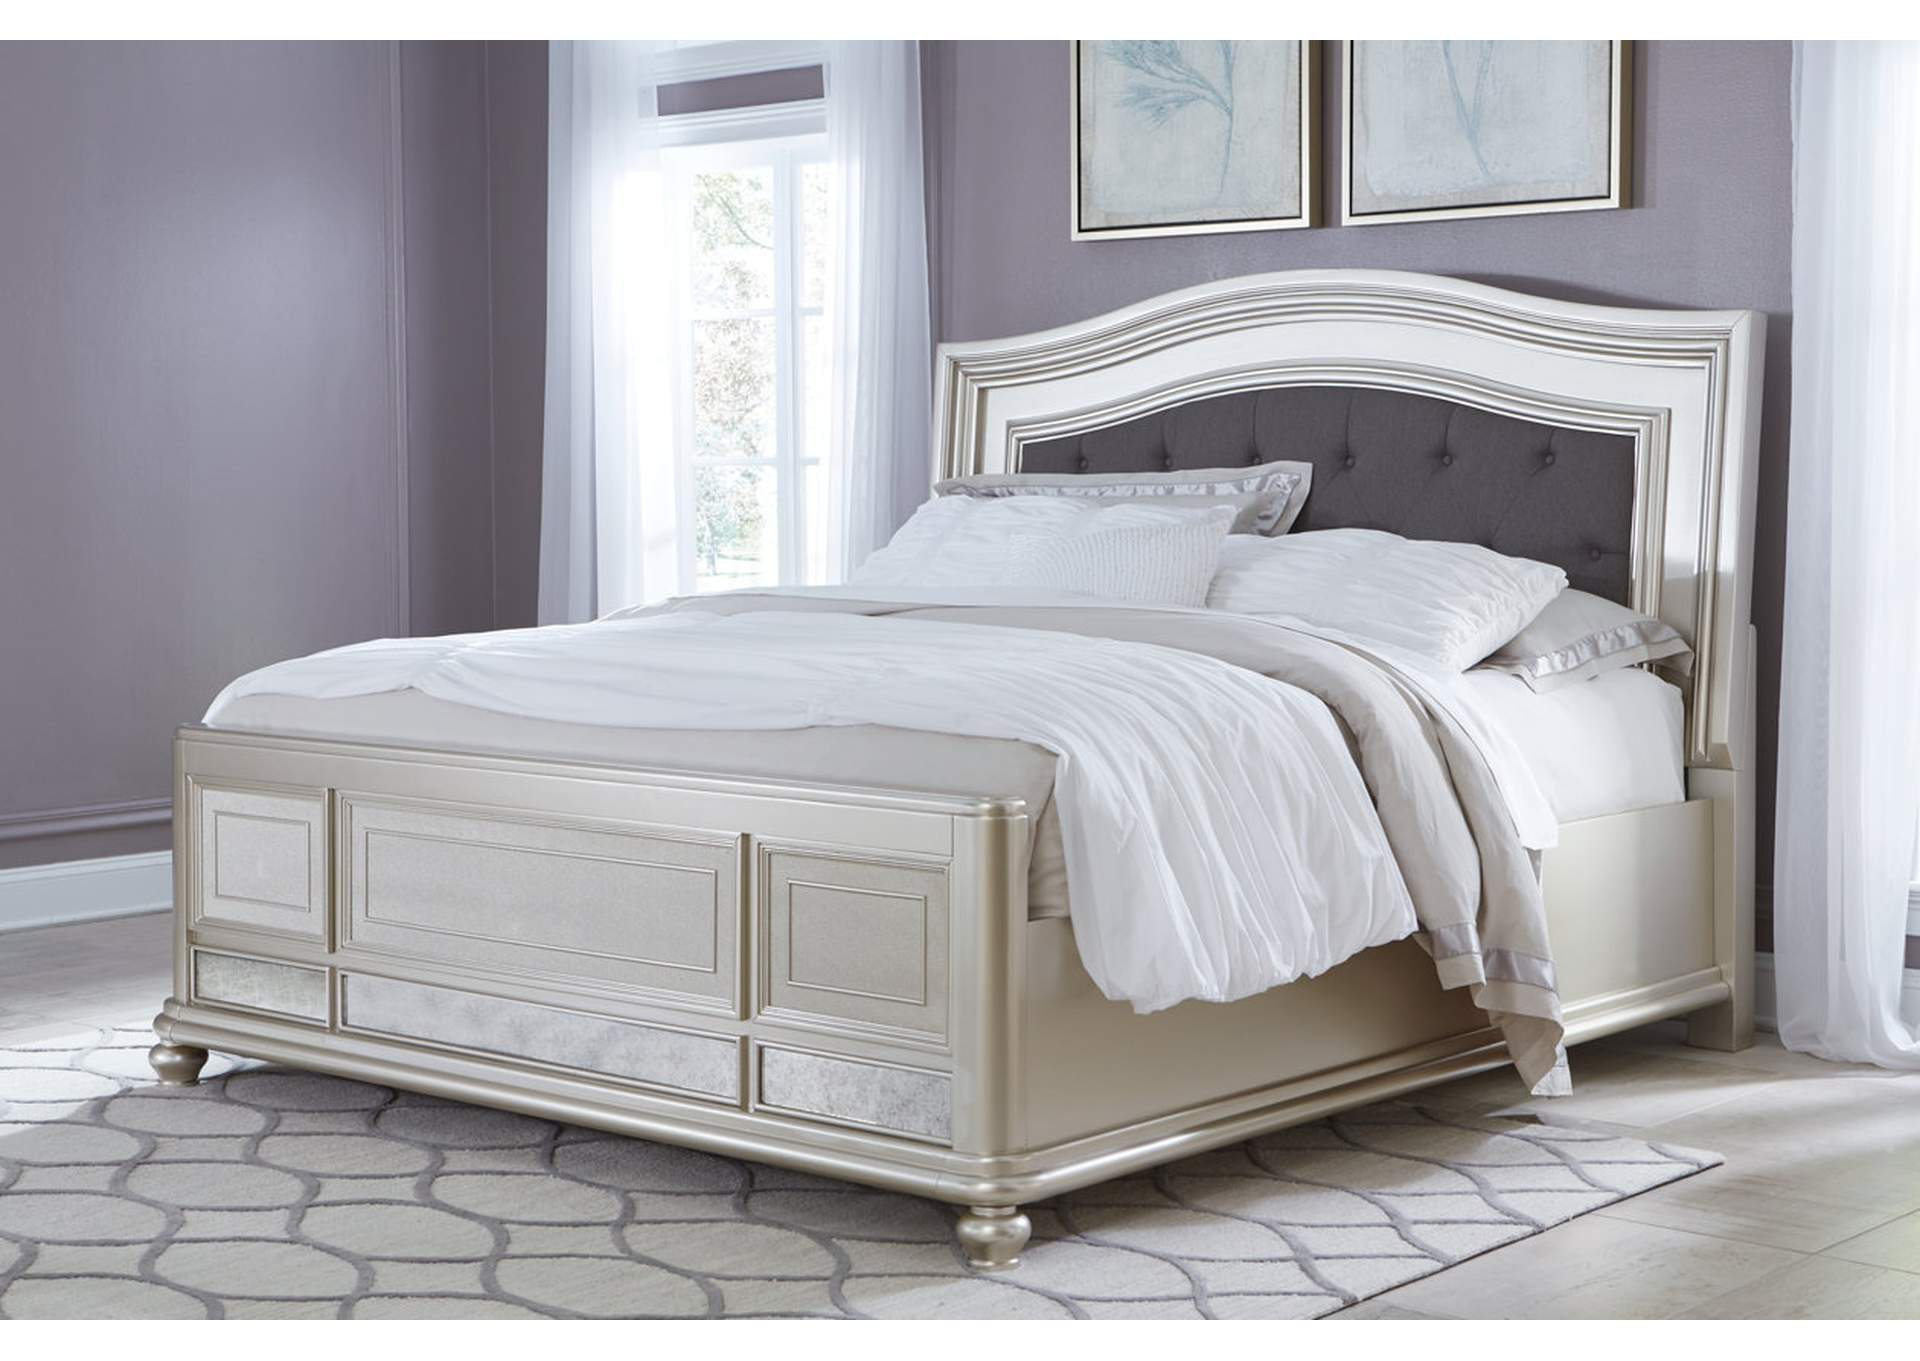 Coralayne Silver King Upholstered Bed,Signature Design By Ashley